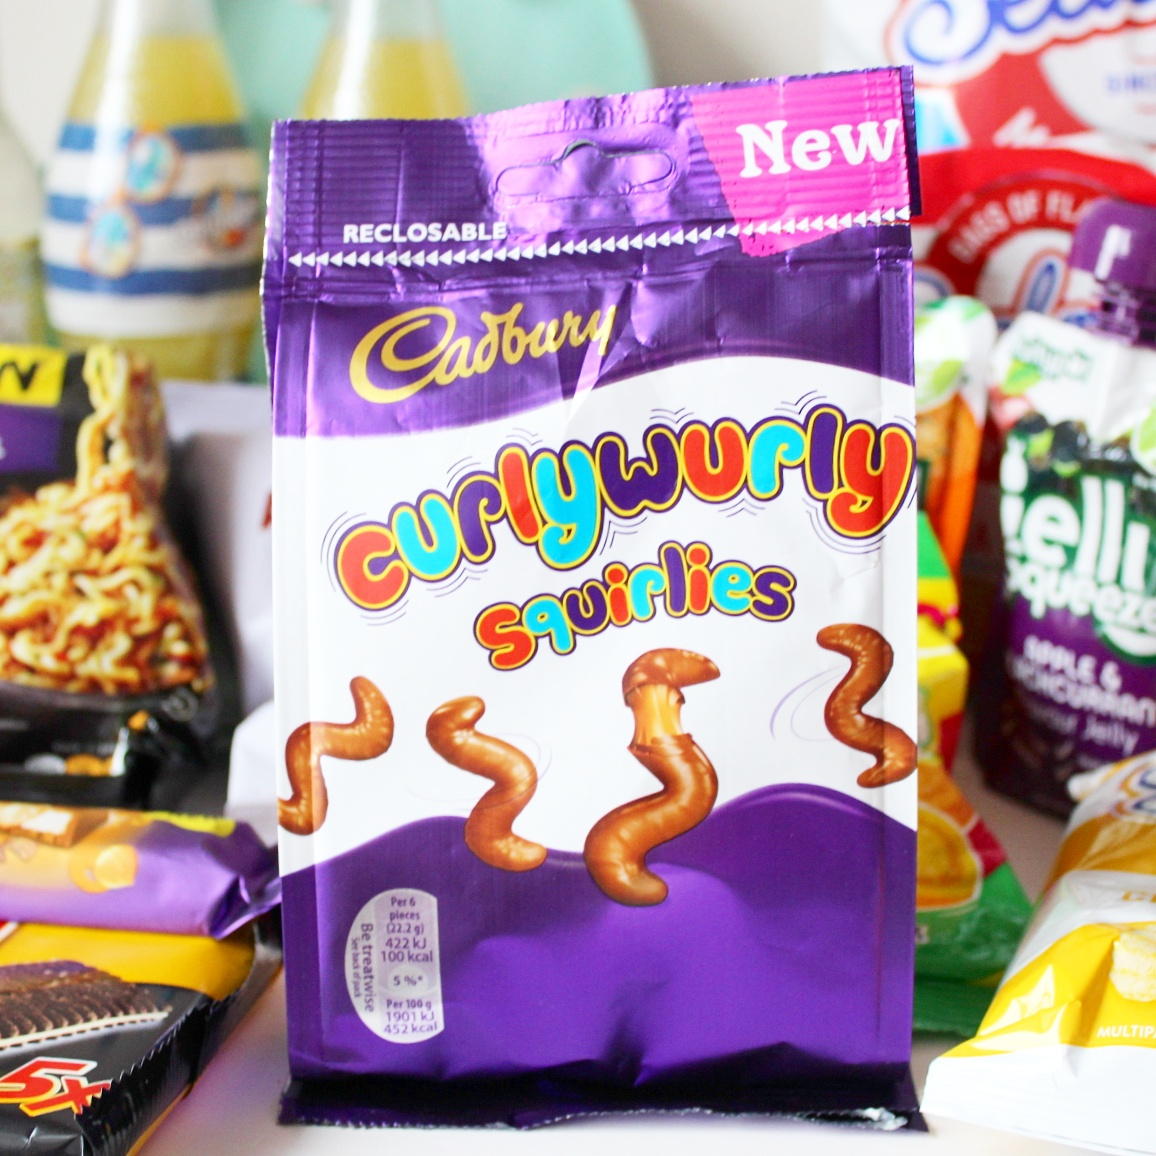 Curlywurly Squirlies | Degustabox